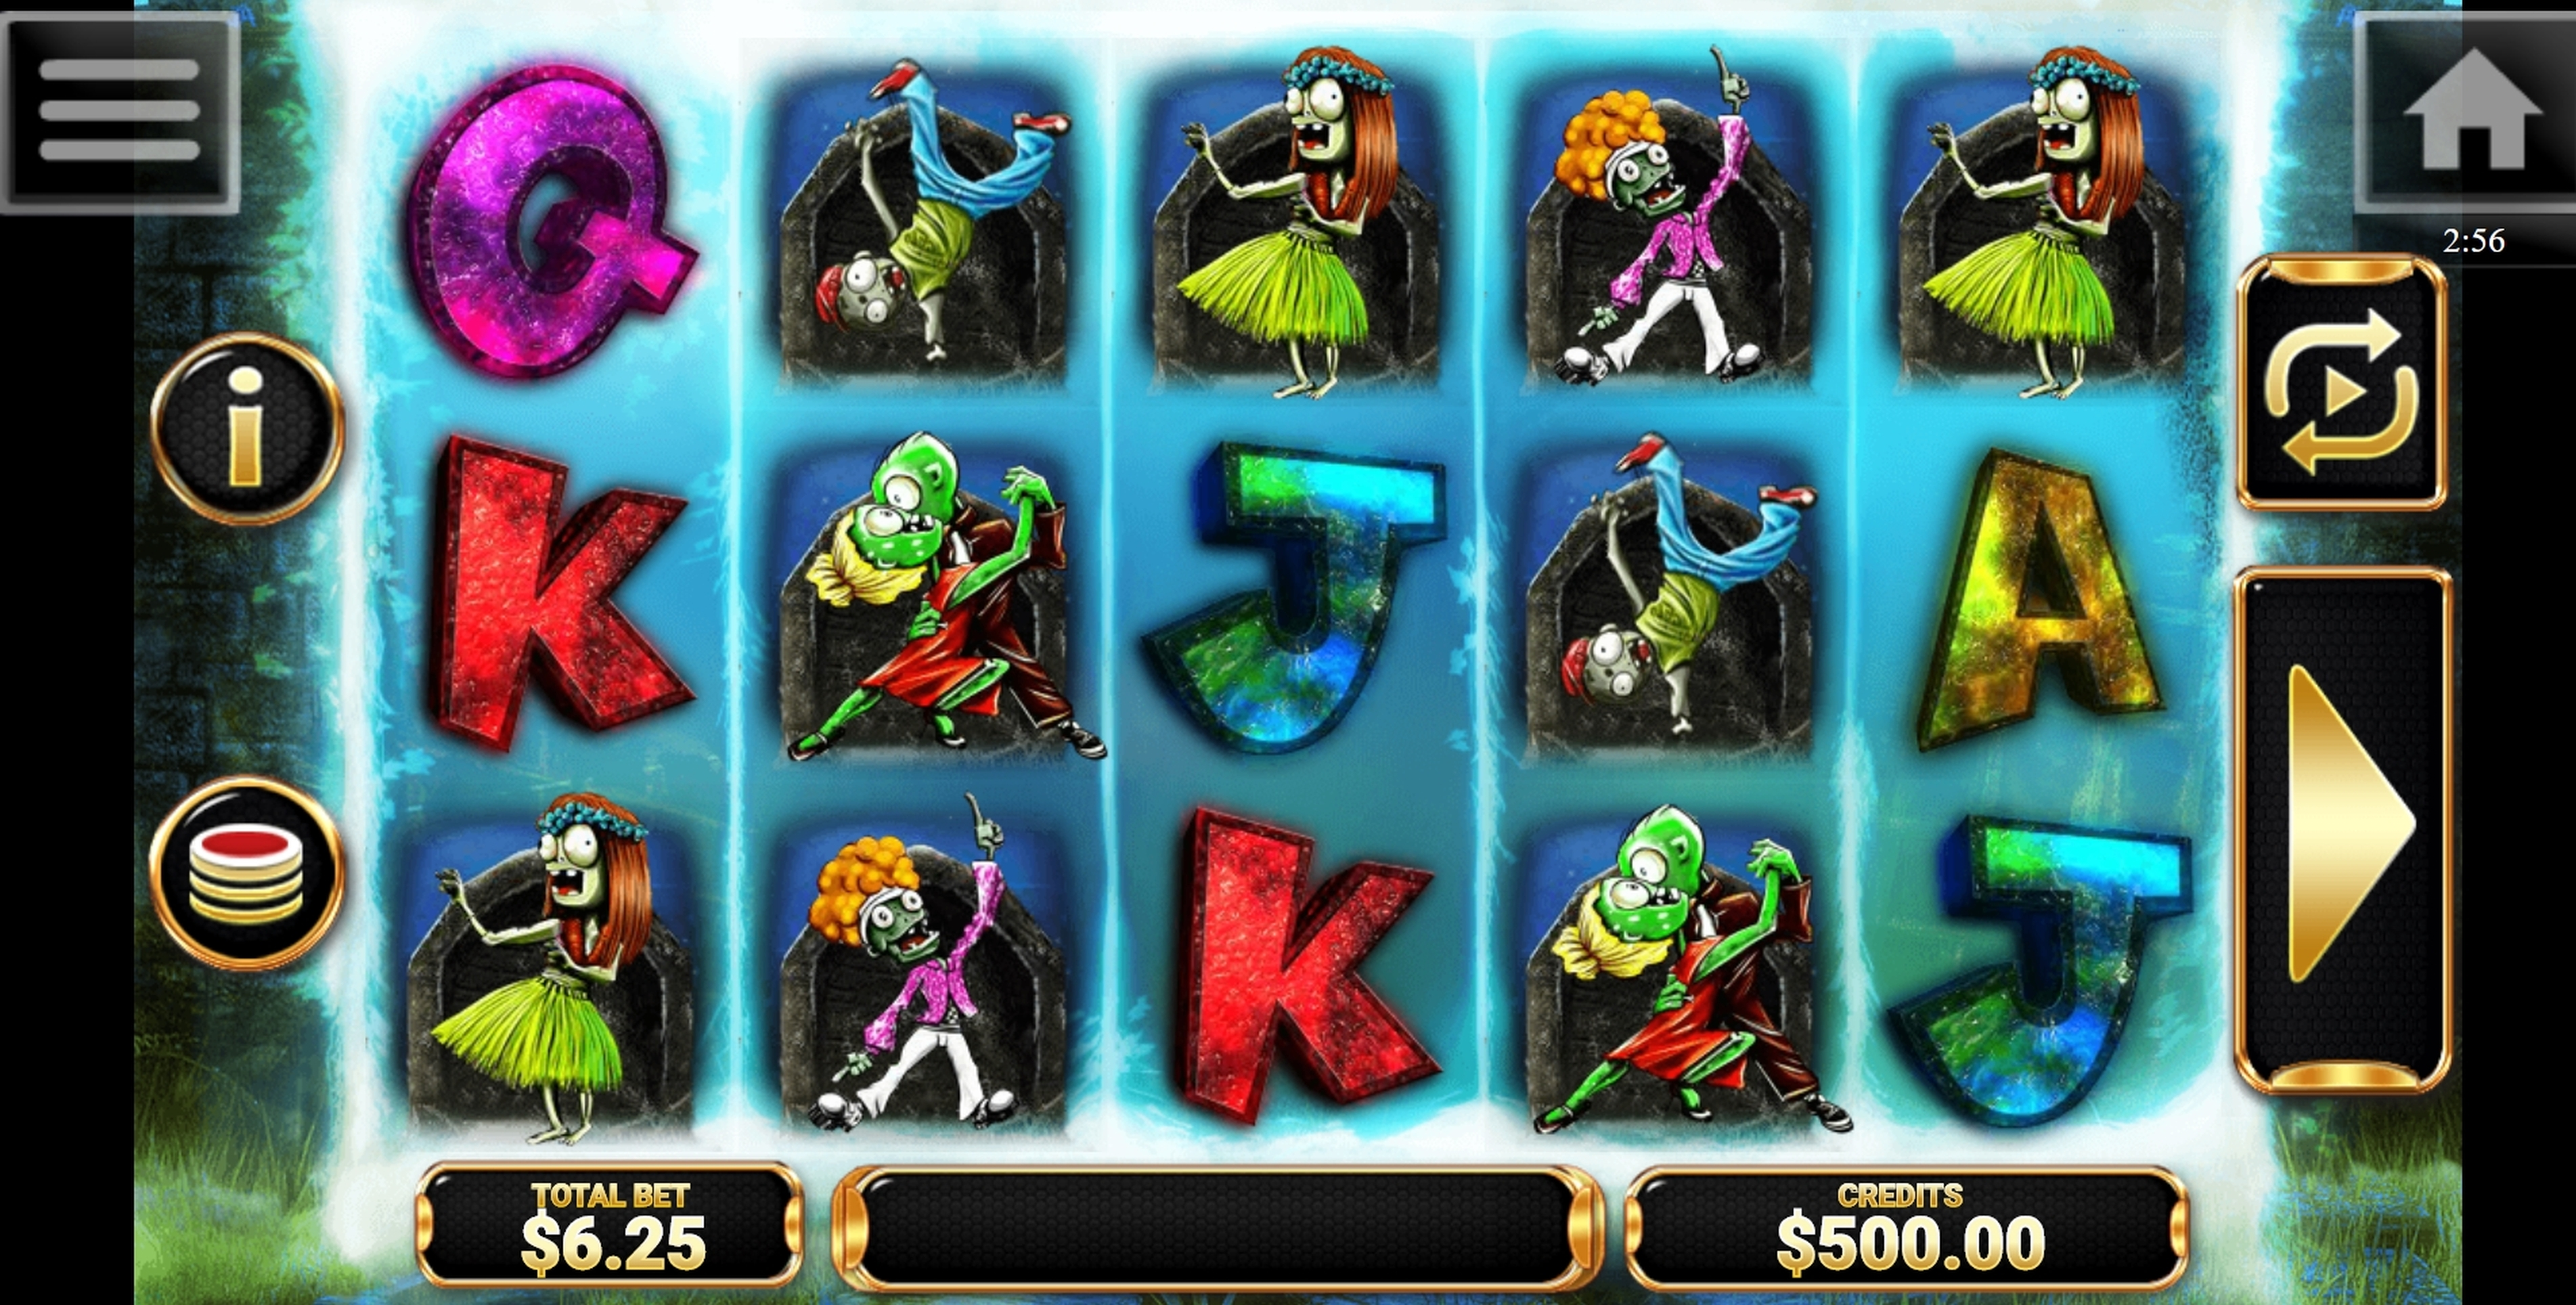 Reels in Dancin' Zombies Slot Game by Betconstruct